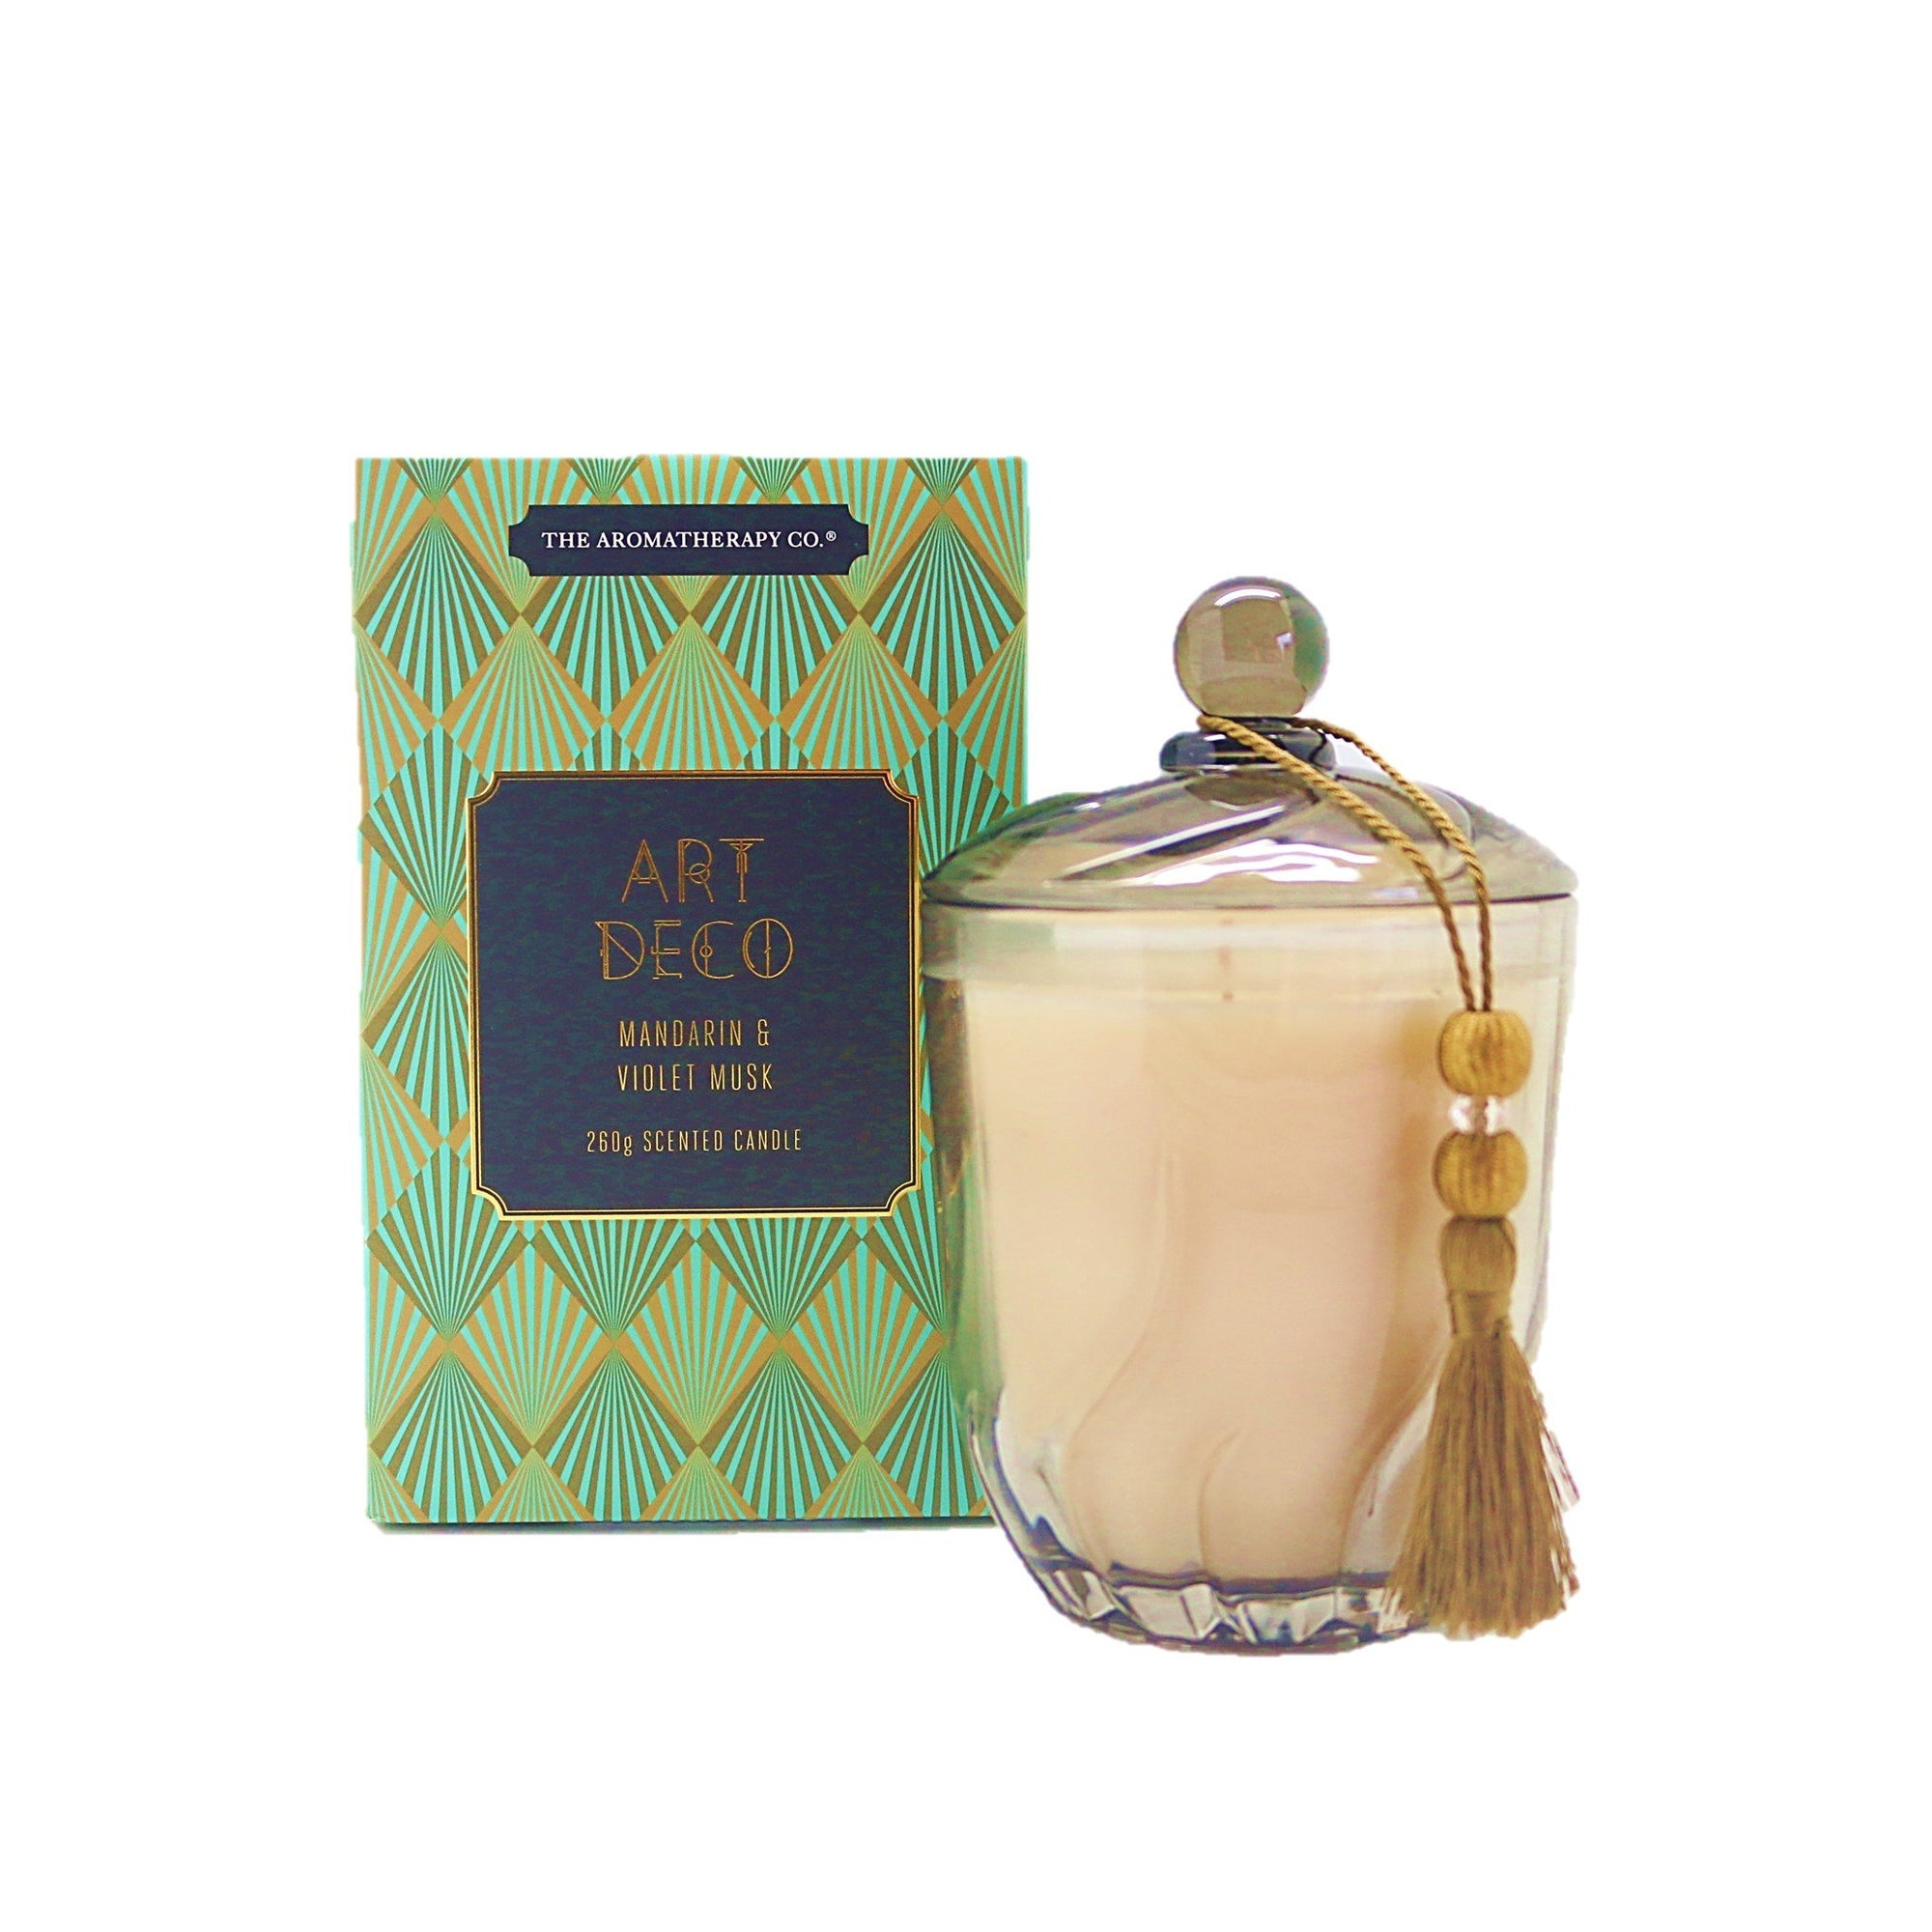 The Aromatherapy Co. Art Deco Candle Mandarin & Voilet Musk 260g